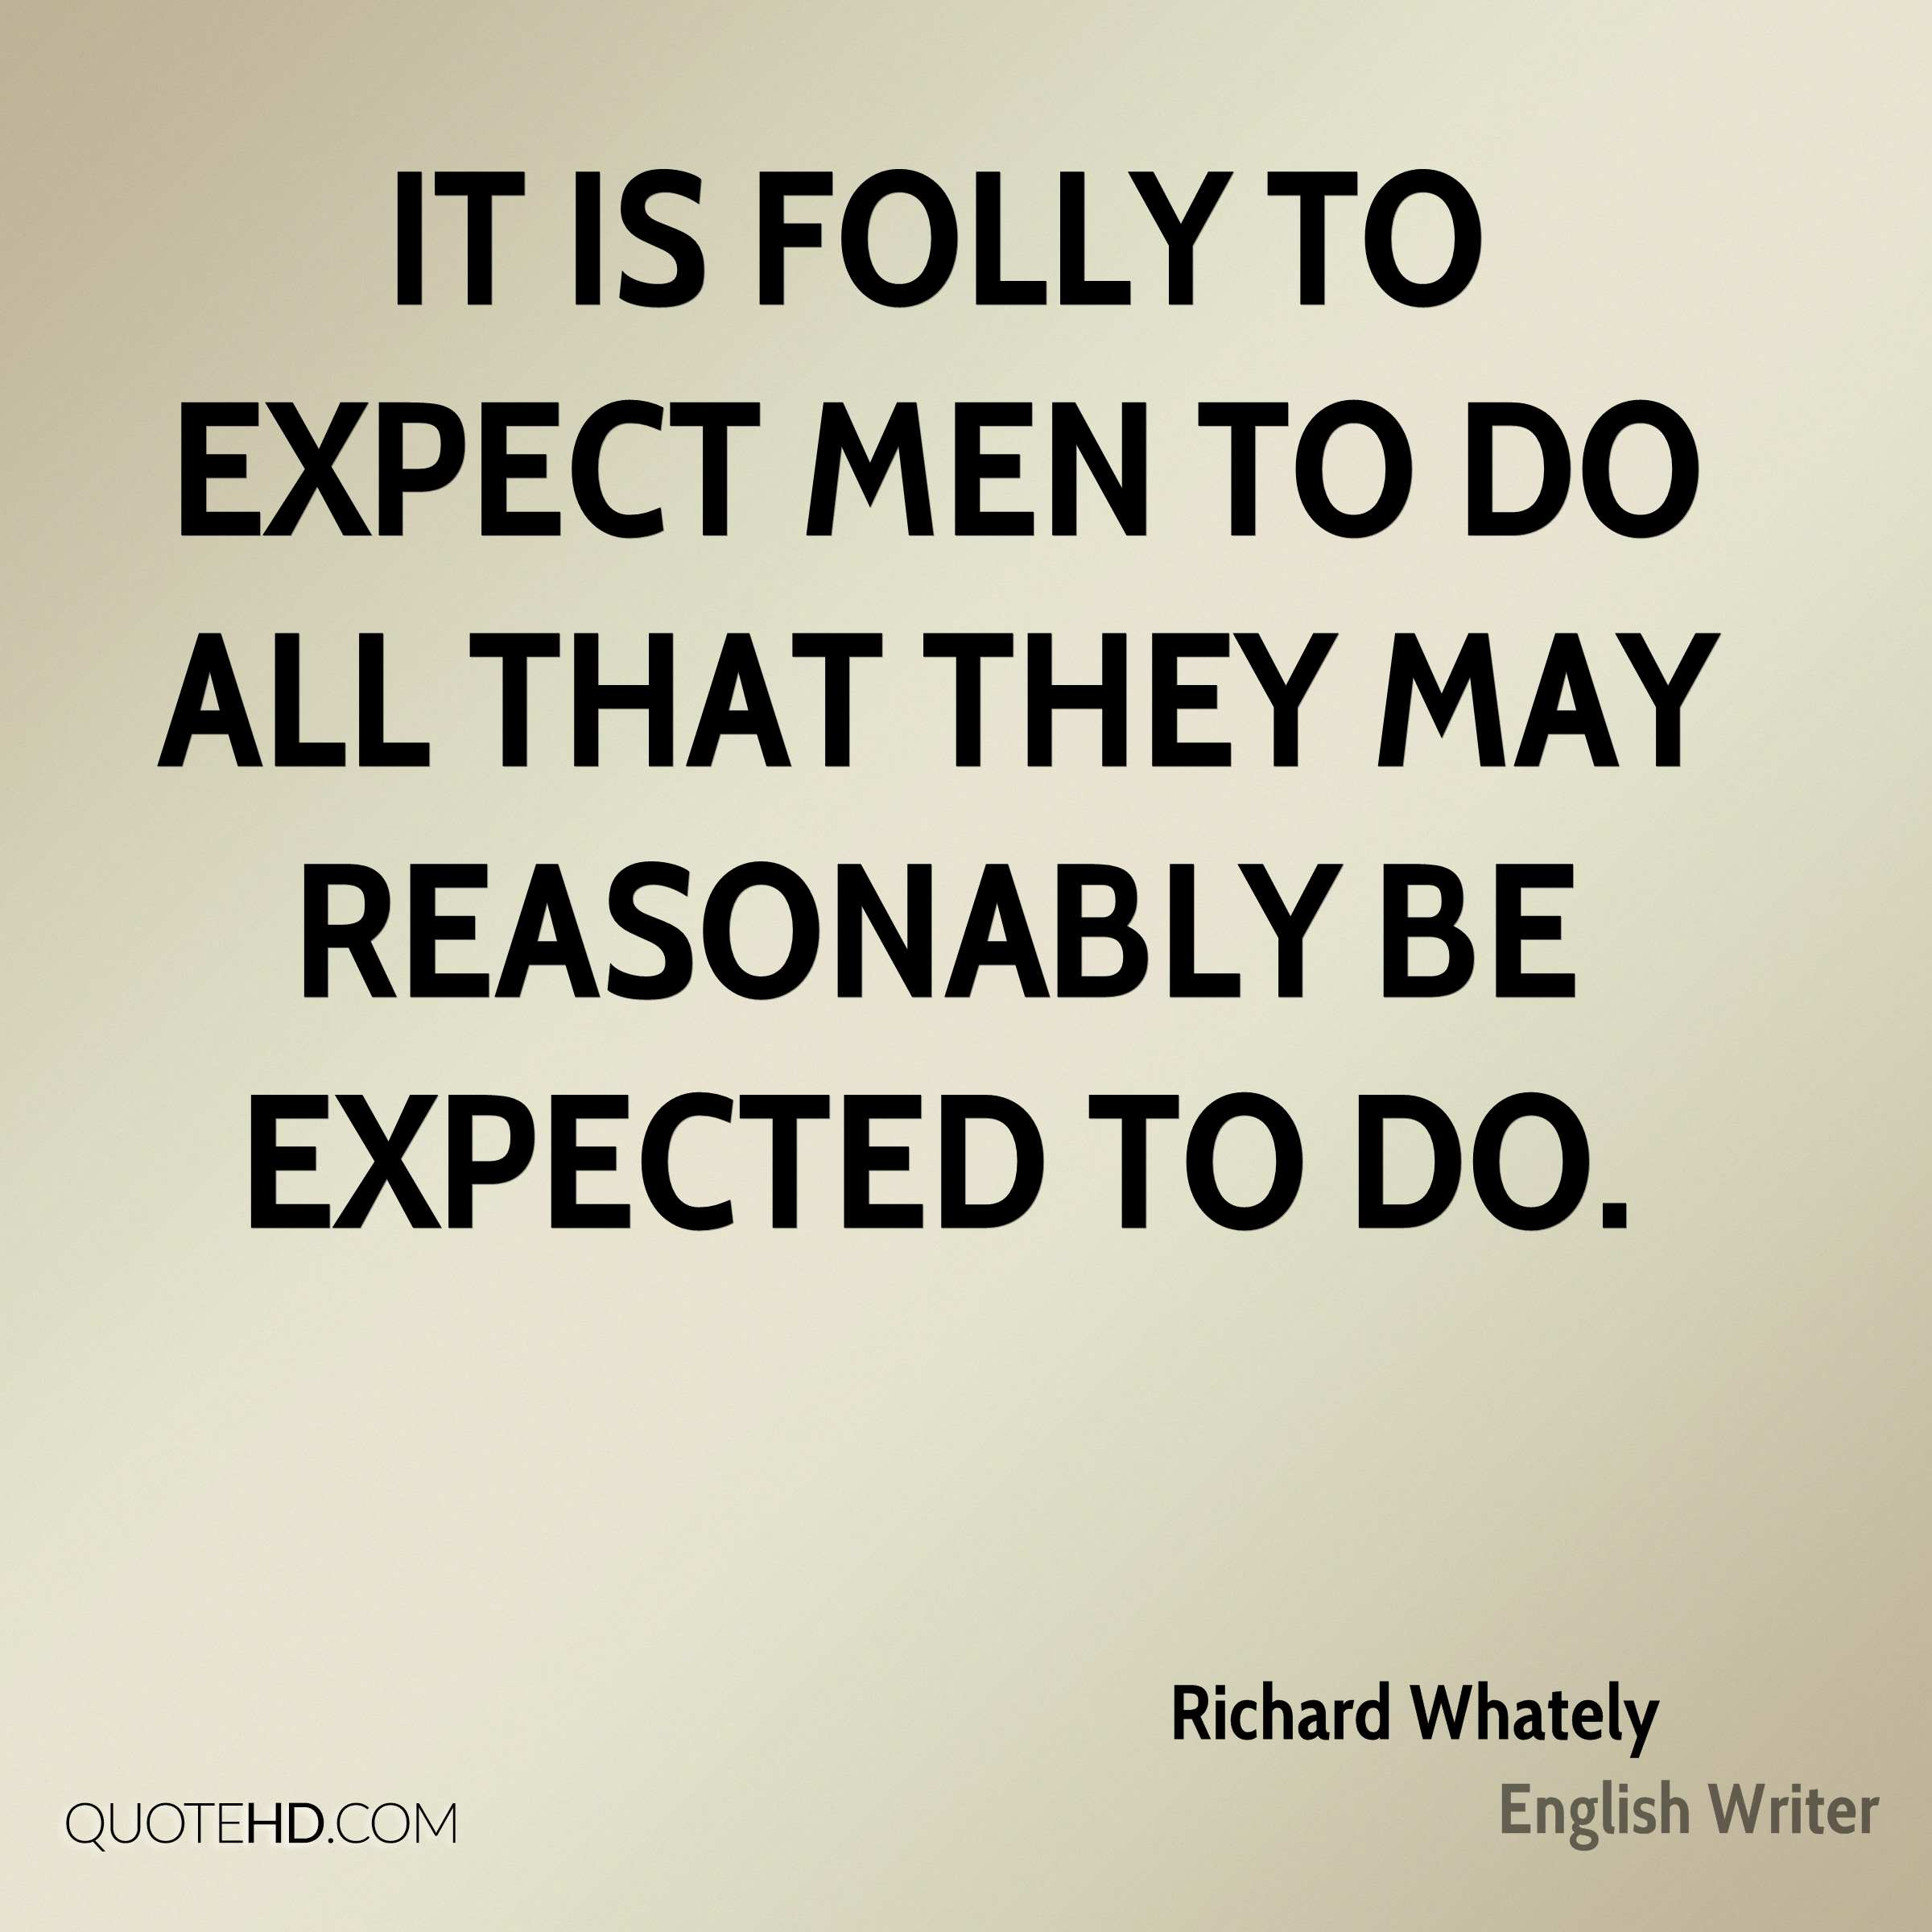 It is folly to expect men to do all that they may reasonably be expected to do.